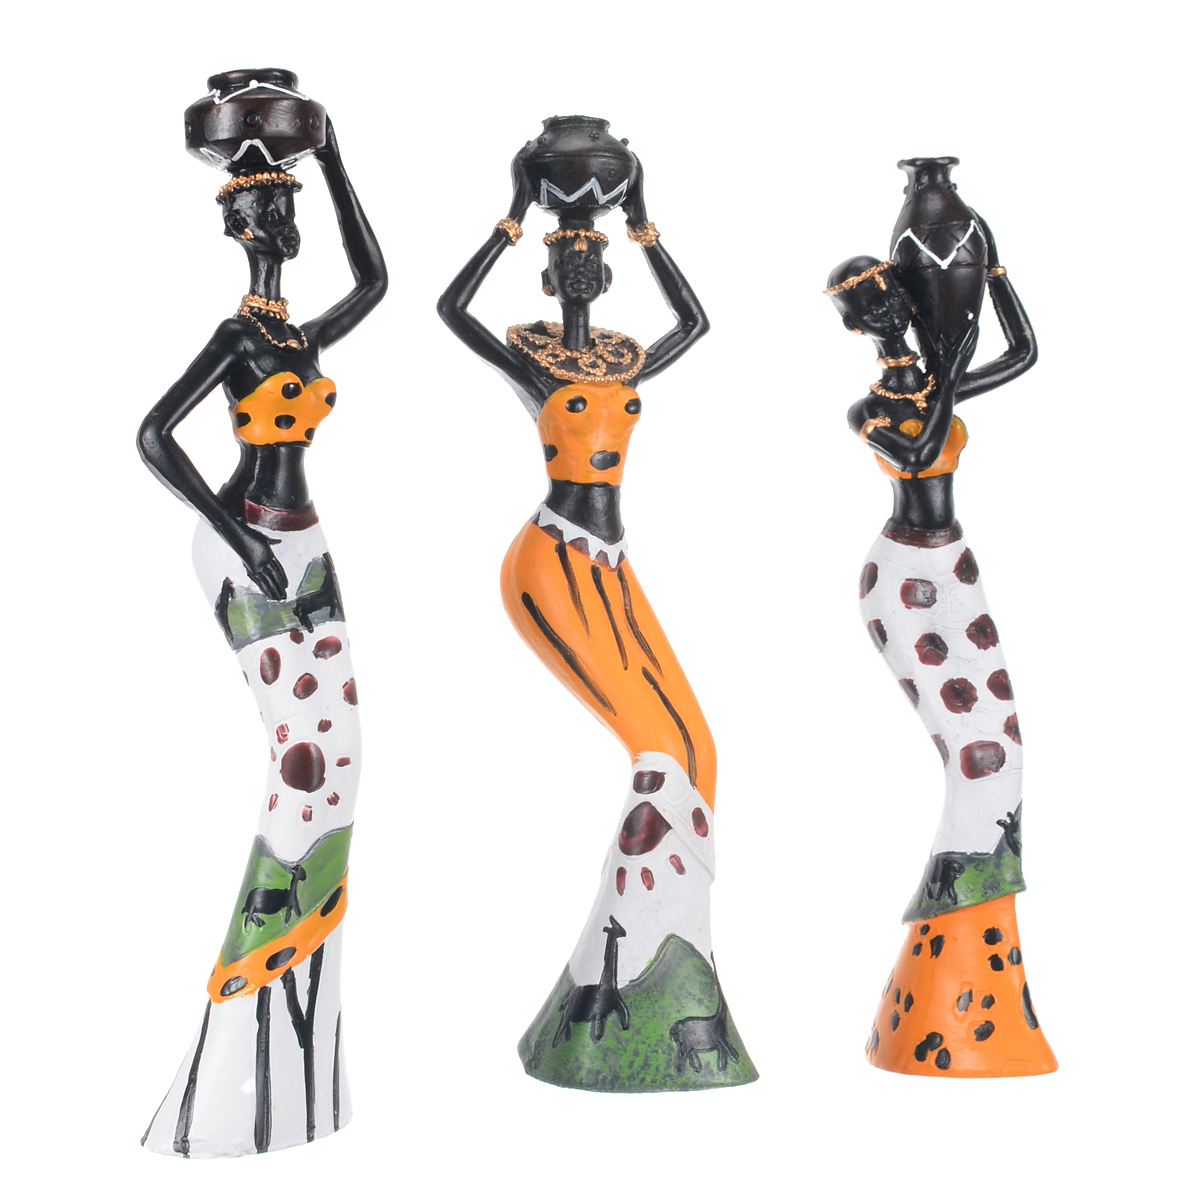 3pcs Exotic African Lady Figurines Set Resin Statue Ornament Art Home Desk Sculpture Decors For Home Office